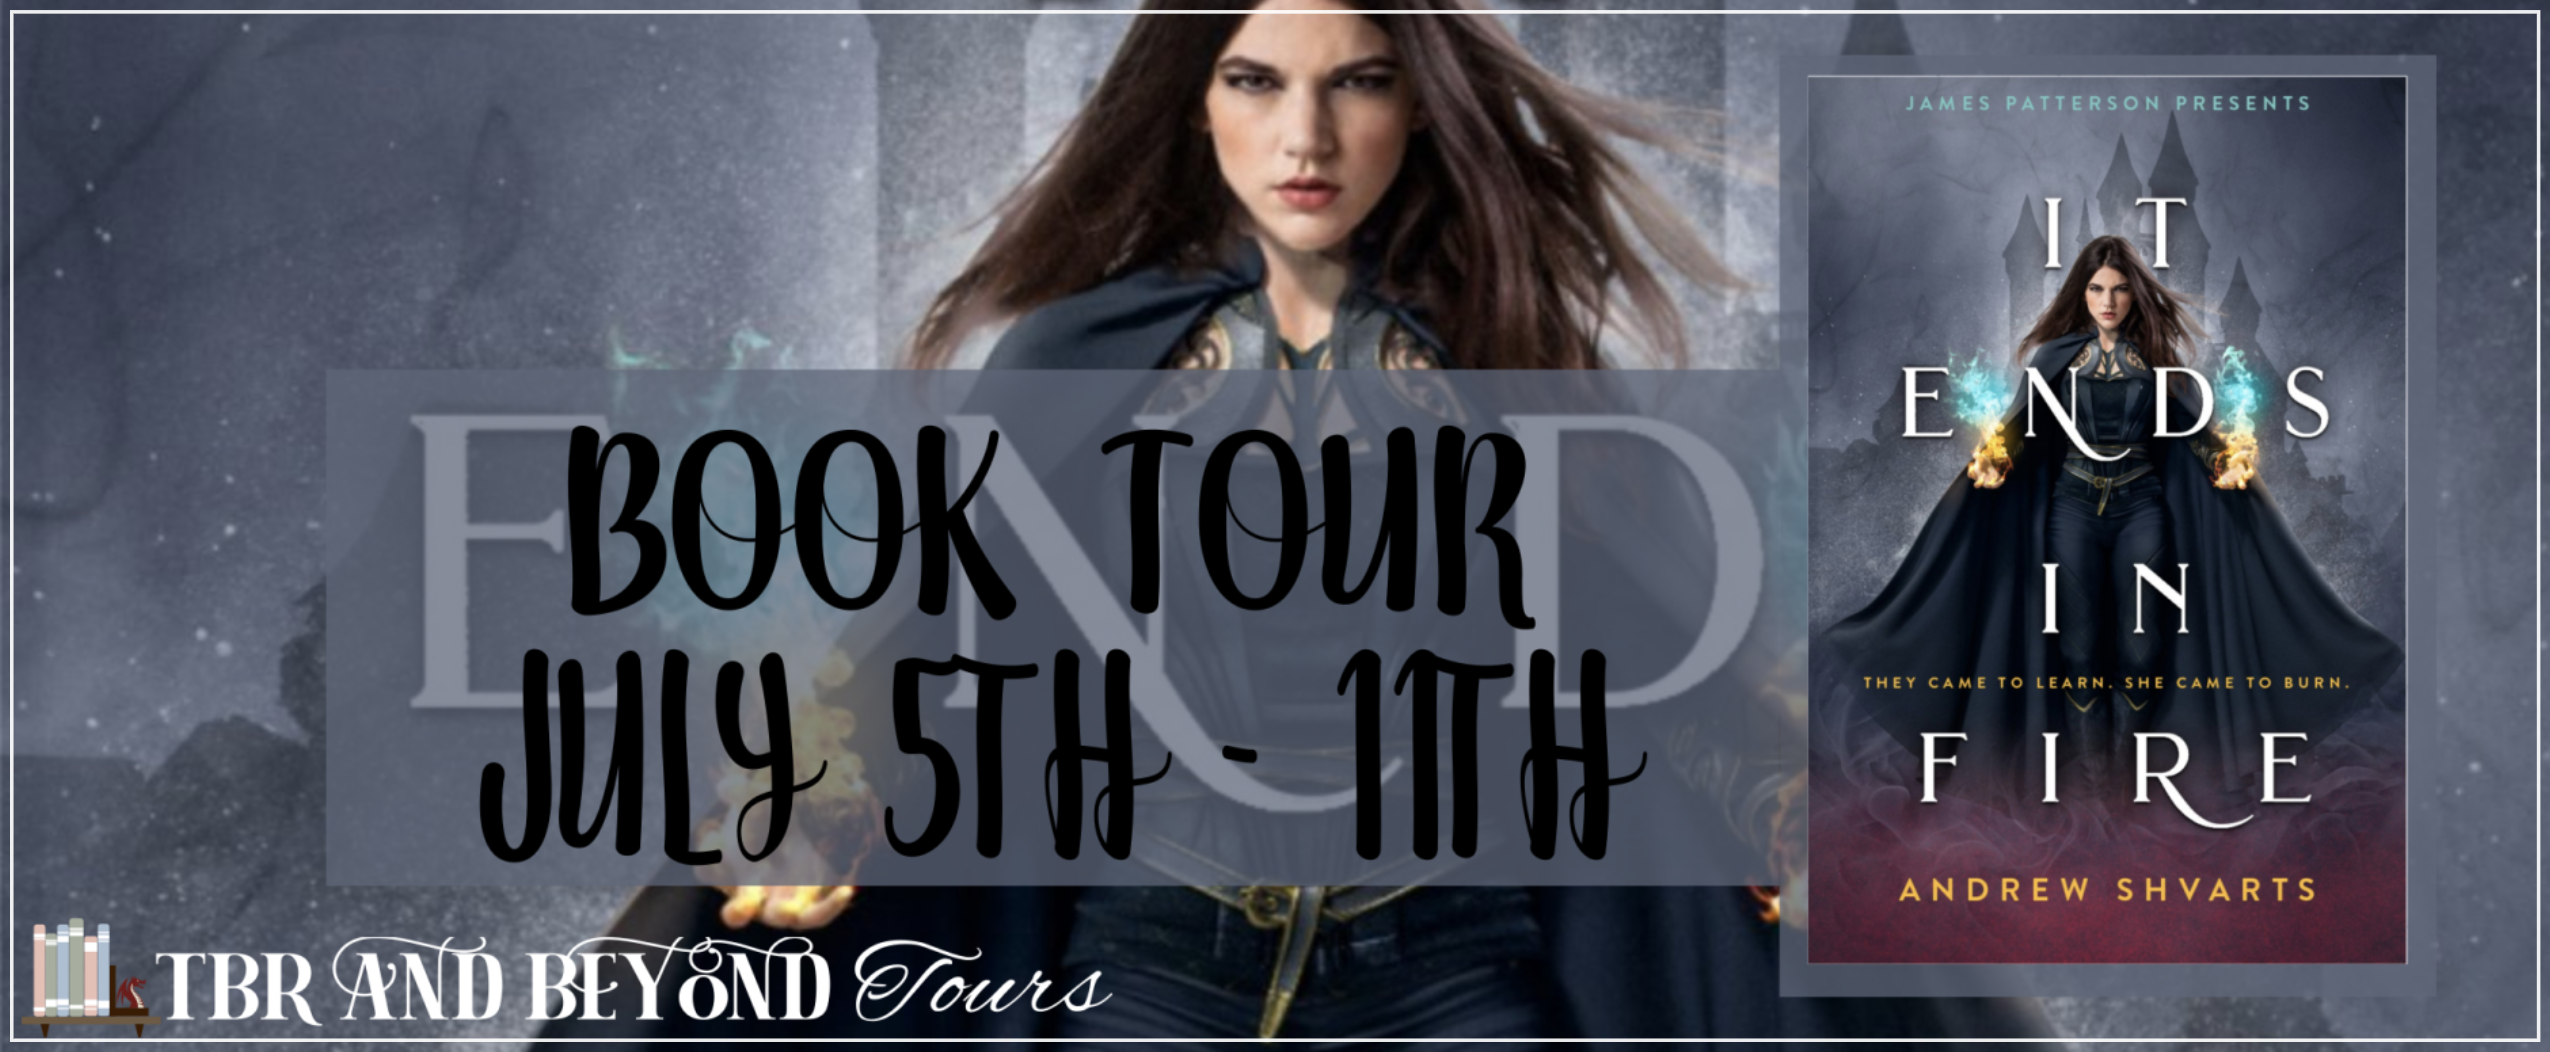 Blog Tour: It Ends in Fire by Andrew Shvarts (Interview + Giveaway!)